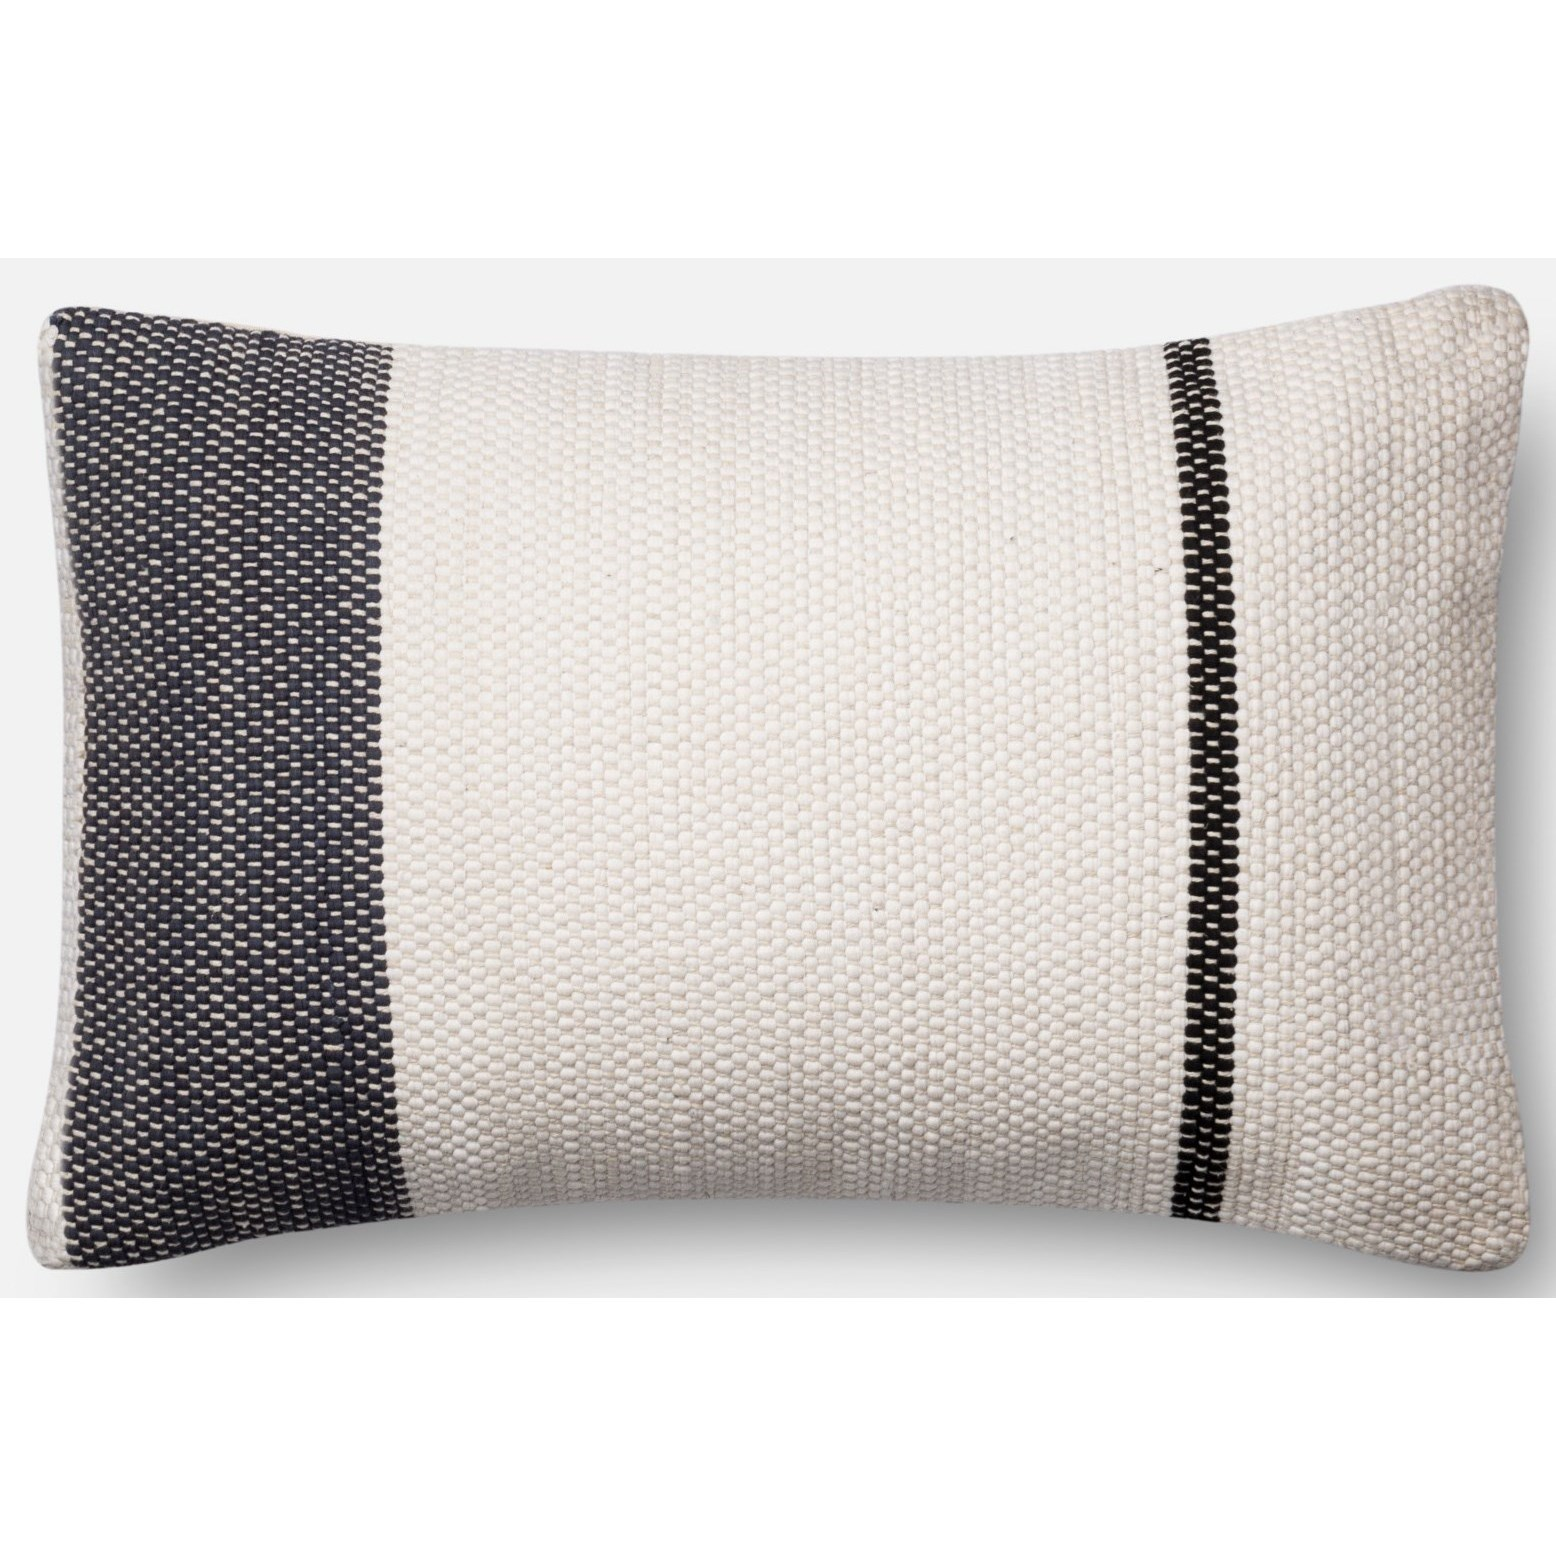 "Accent Pillows 13"" X 21"" Cover w/Poly Pillow by Magnolia Home by Joanna Gaines for Loloi at Belfort Furniture"